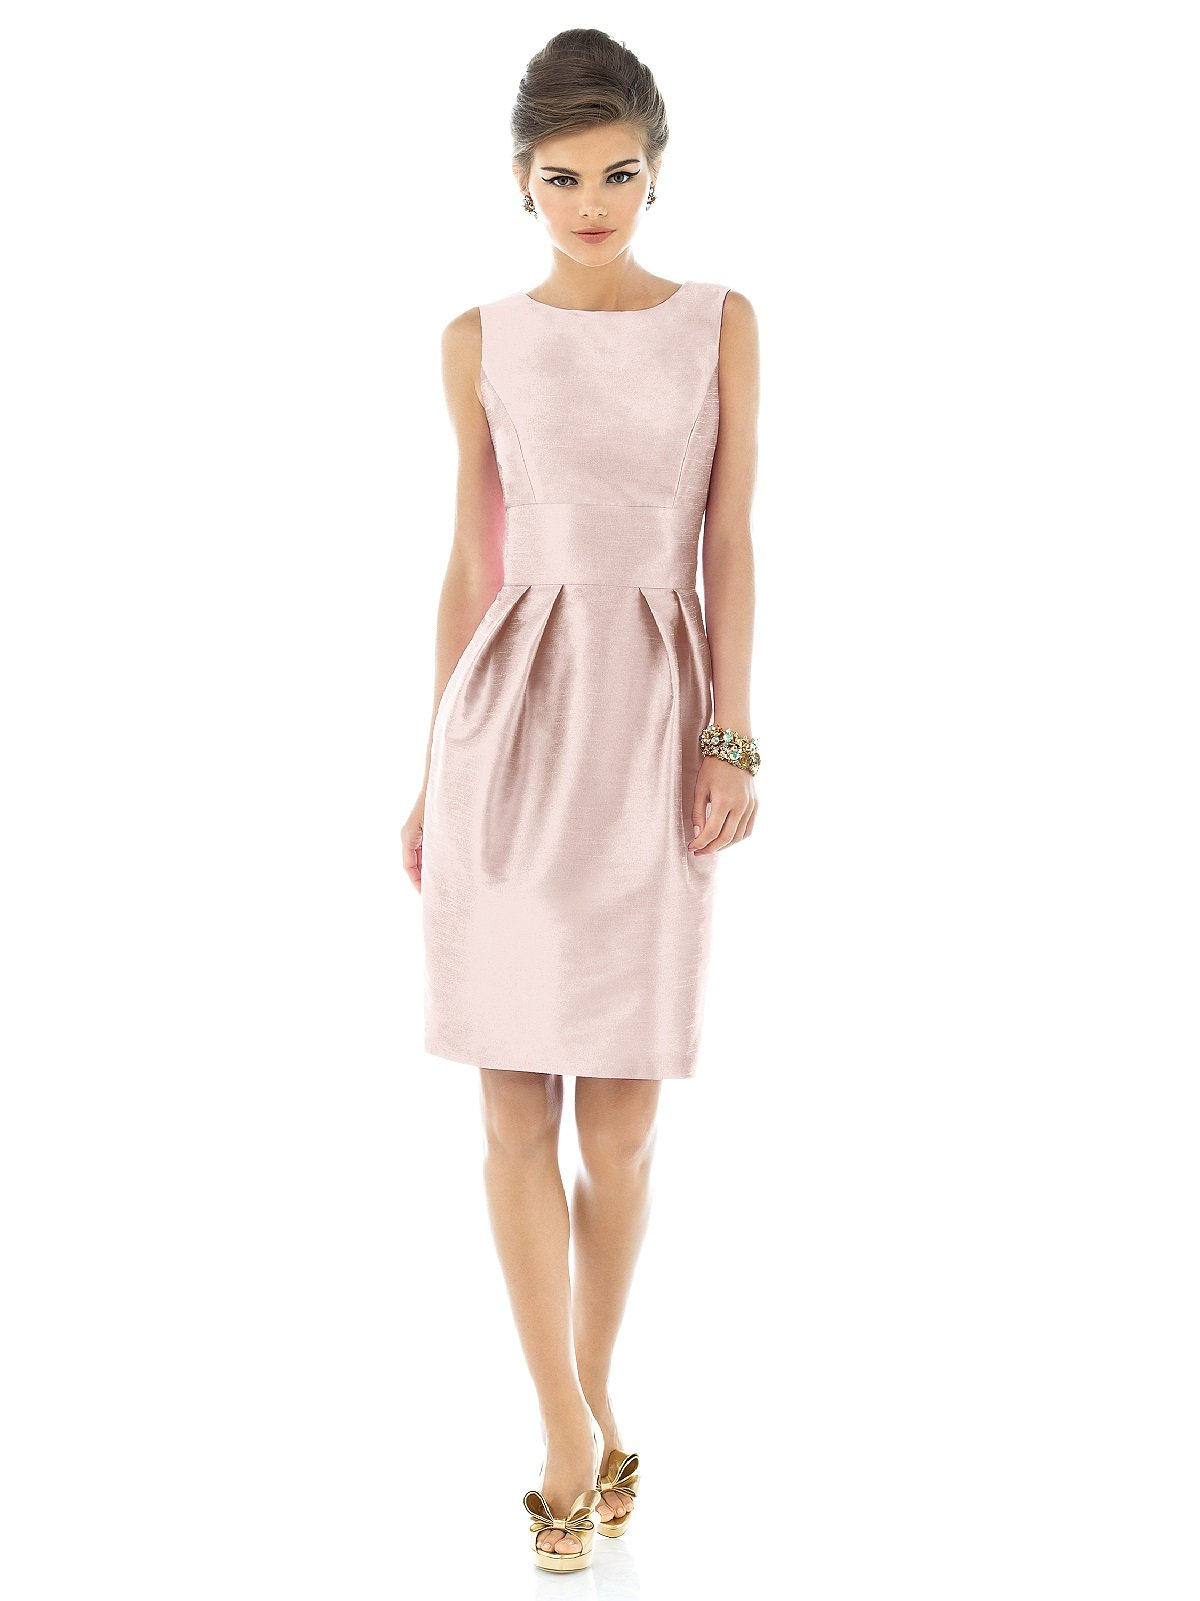 Women's Sleeveless Cocktail Length Dress with Large Bow by Alfred Sung - Pearl Pink - Size 10